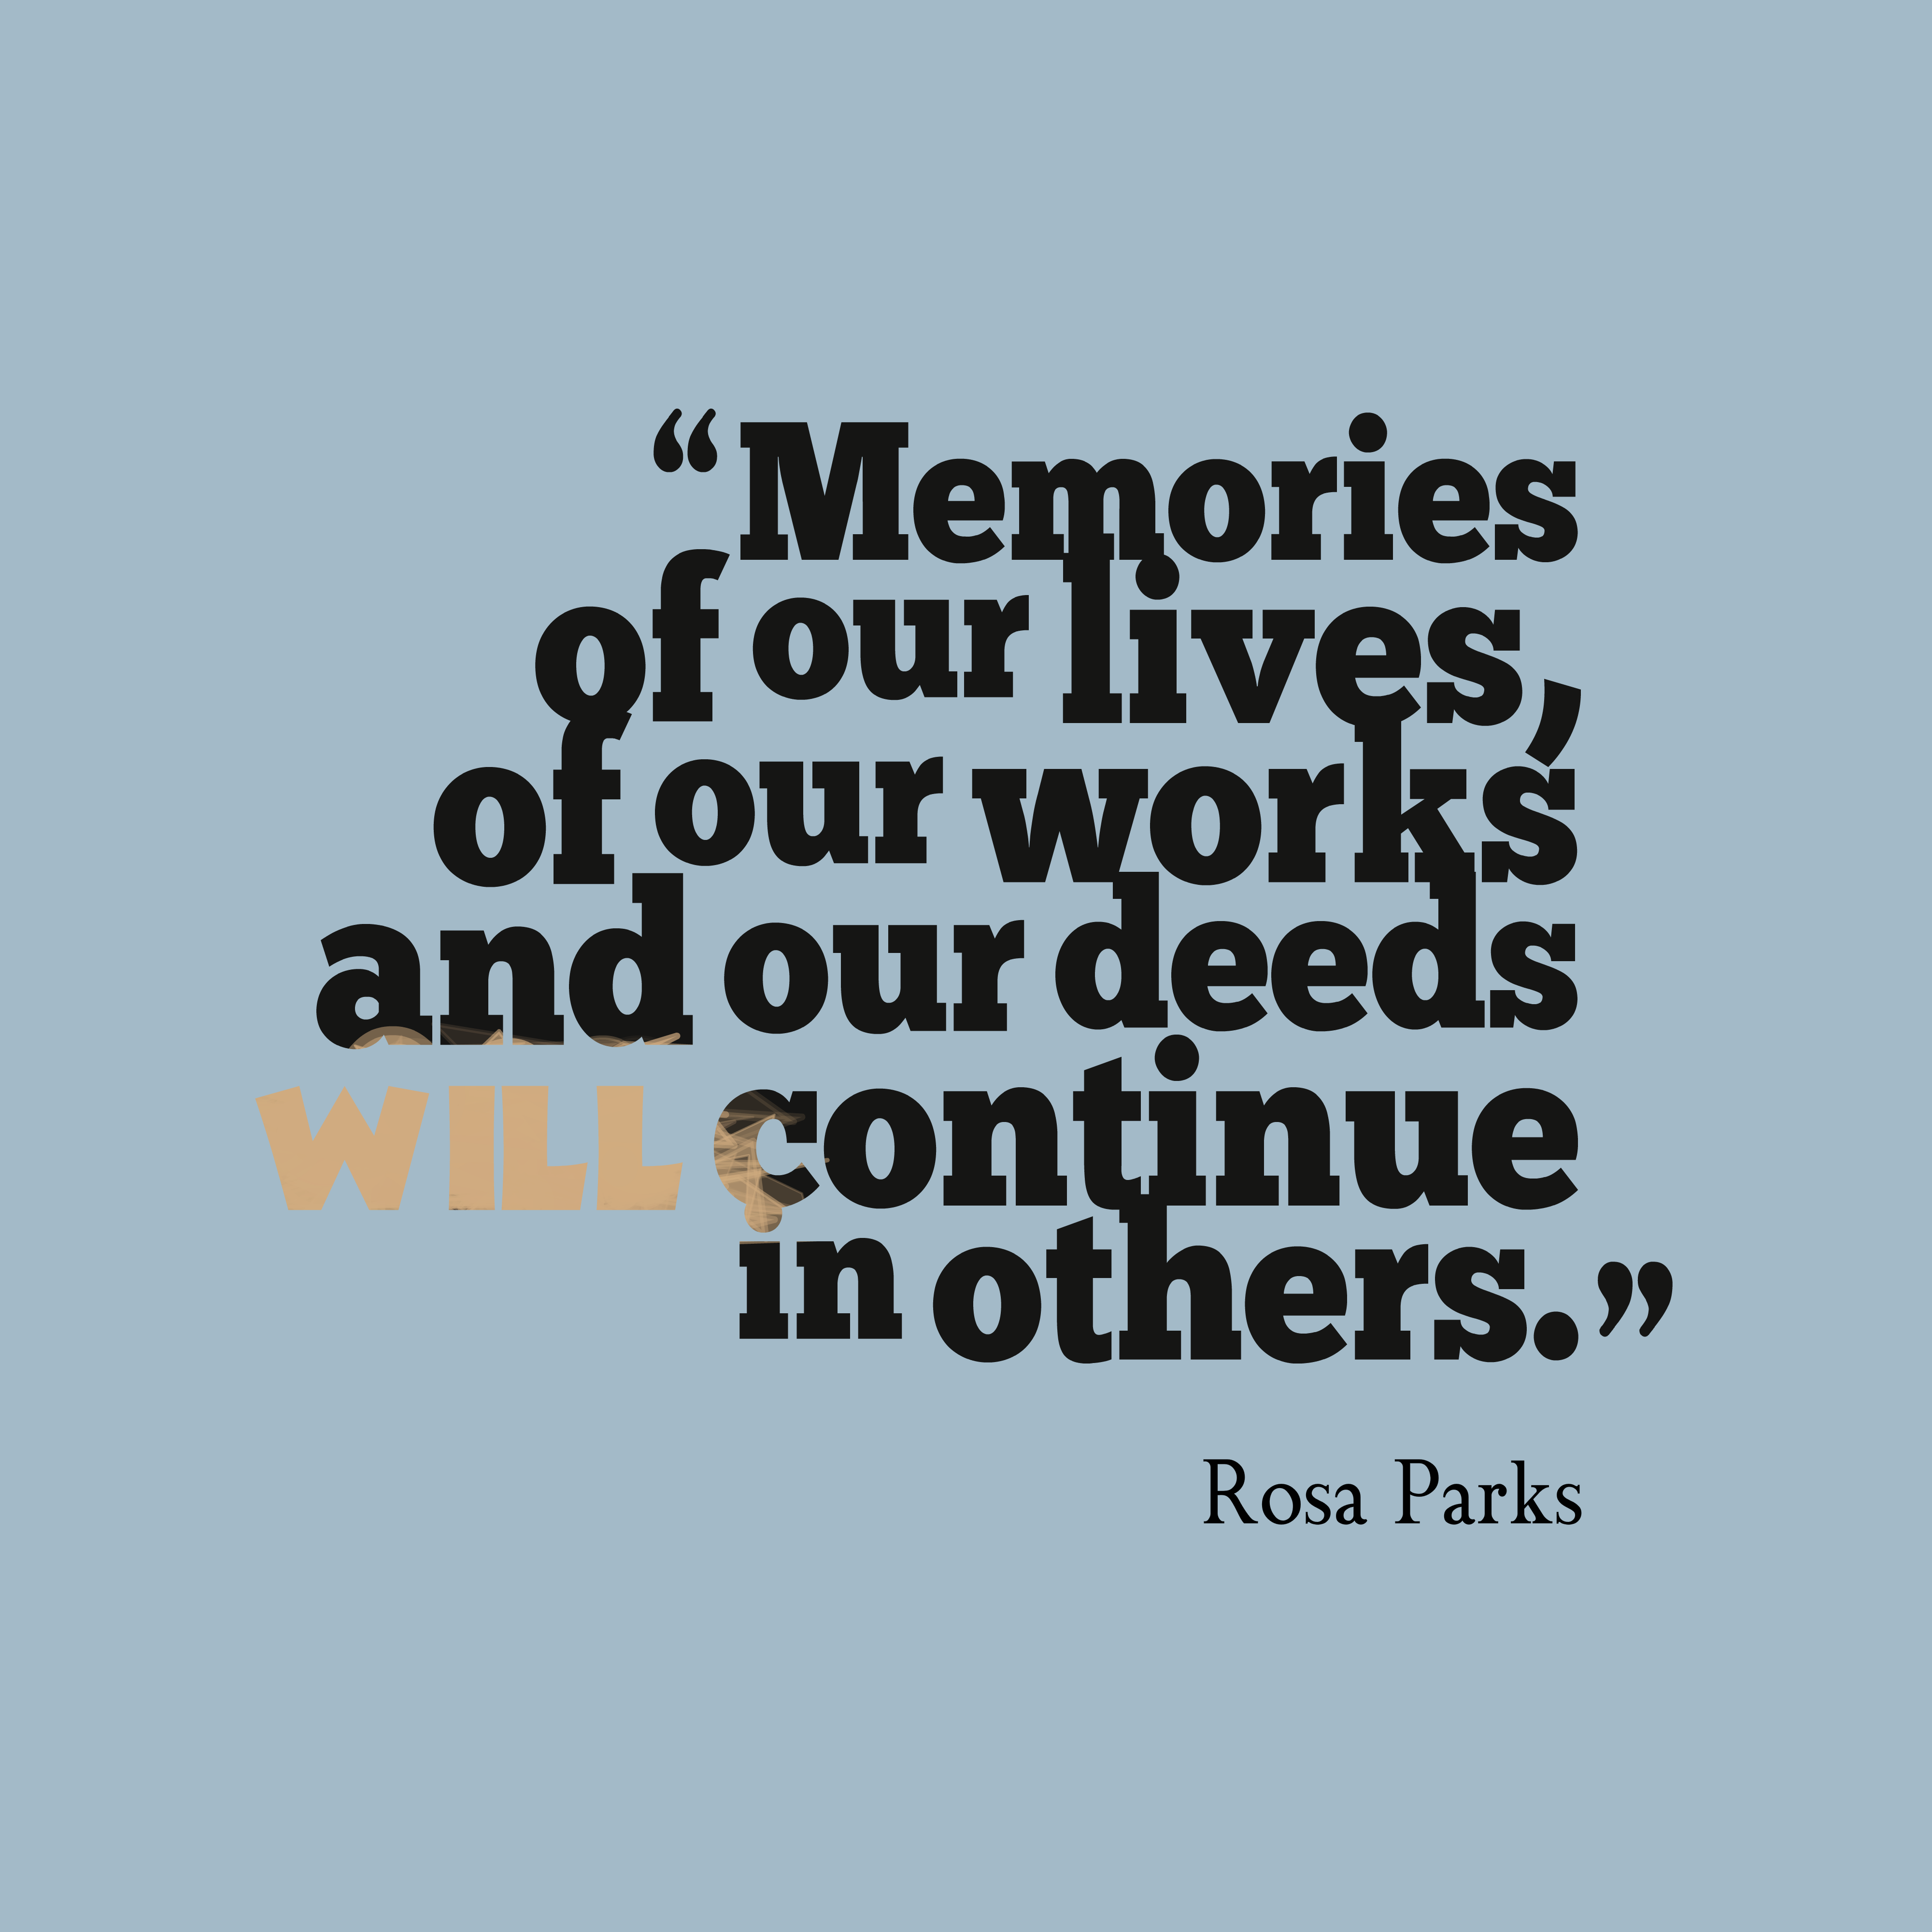 Rosa Parks Quote About Memory.